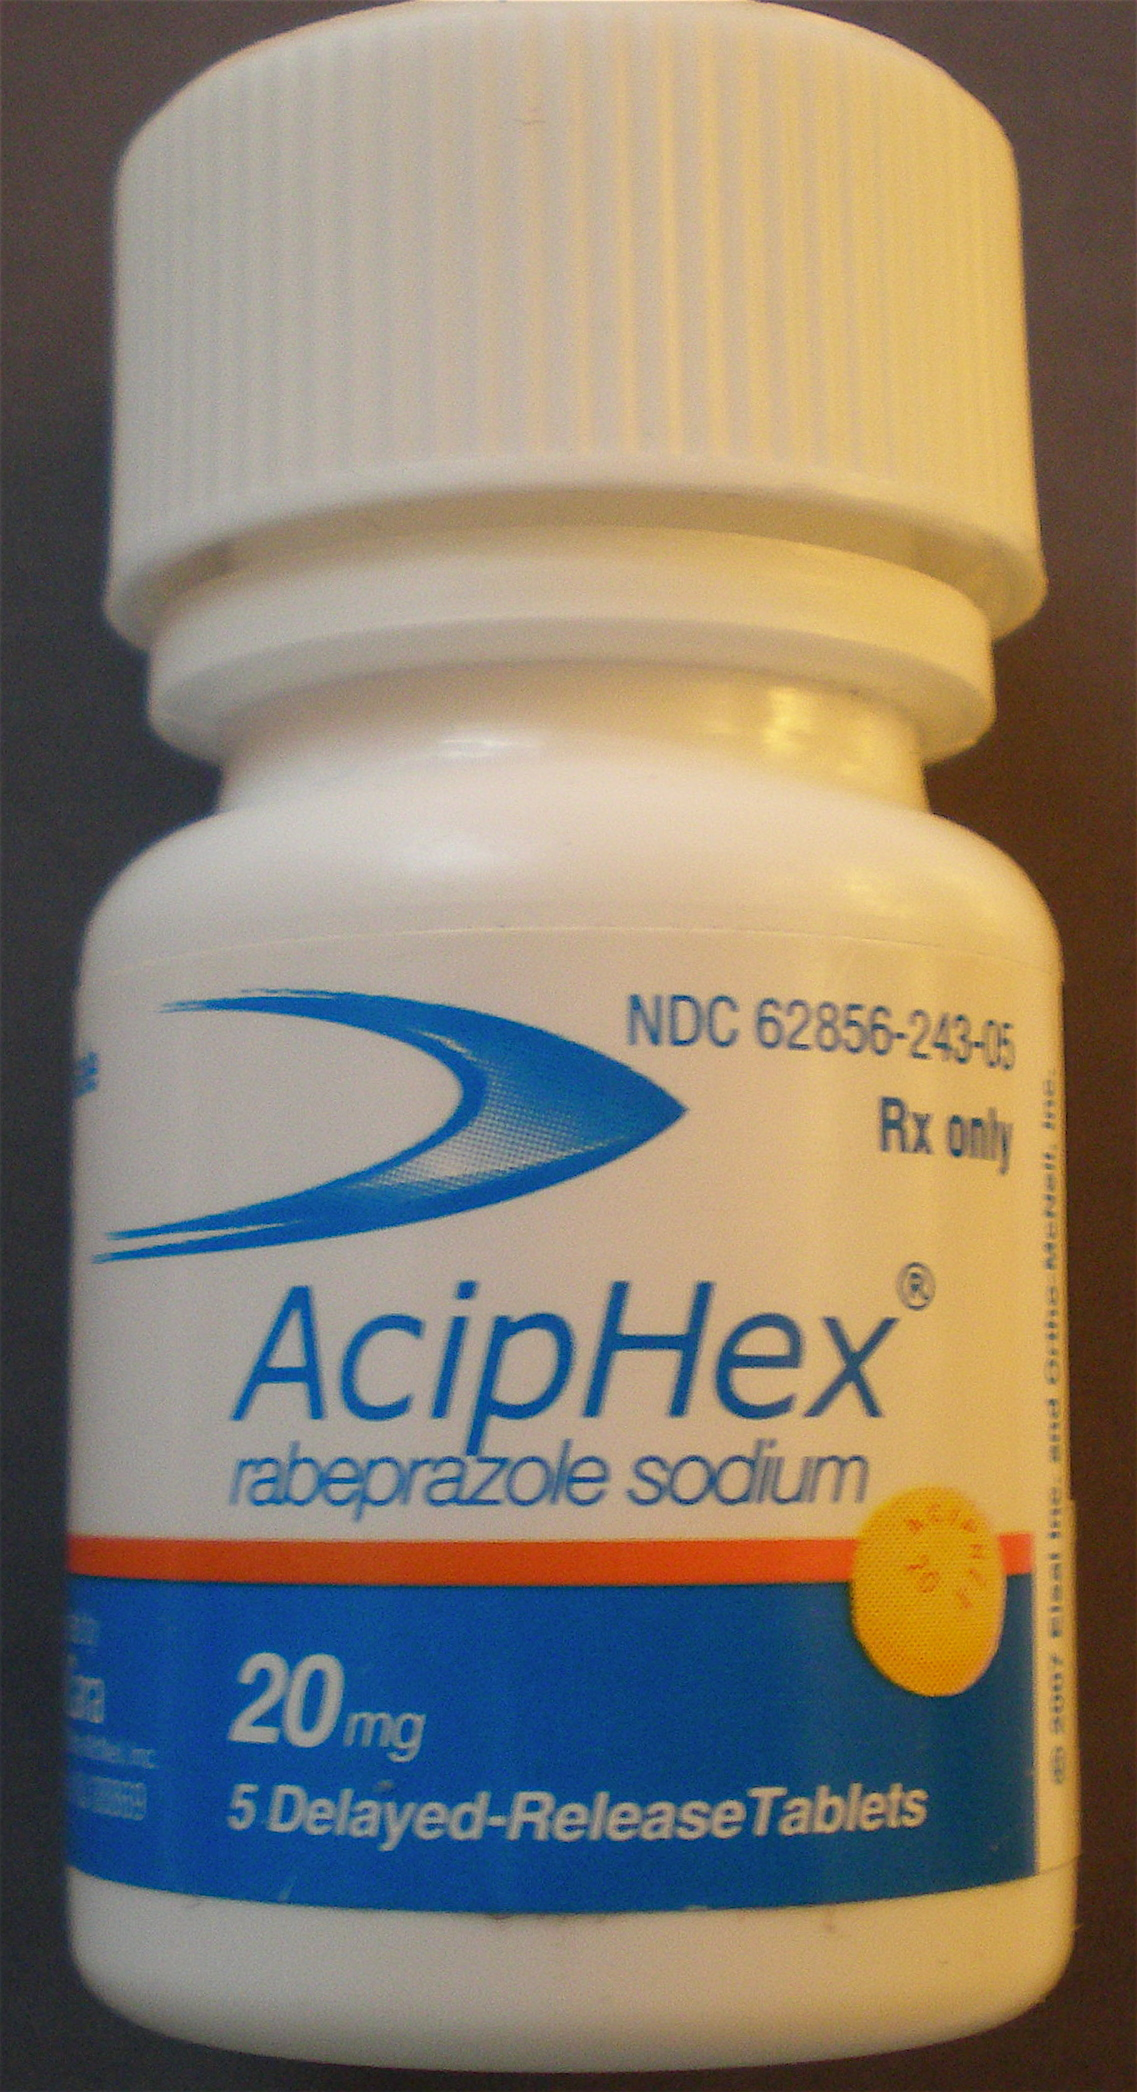 How Is Aciphex Used?